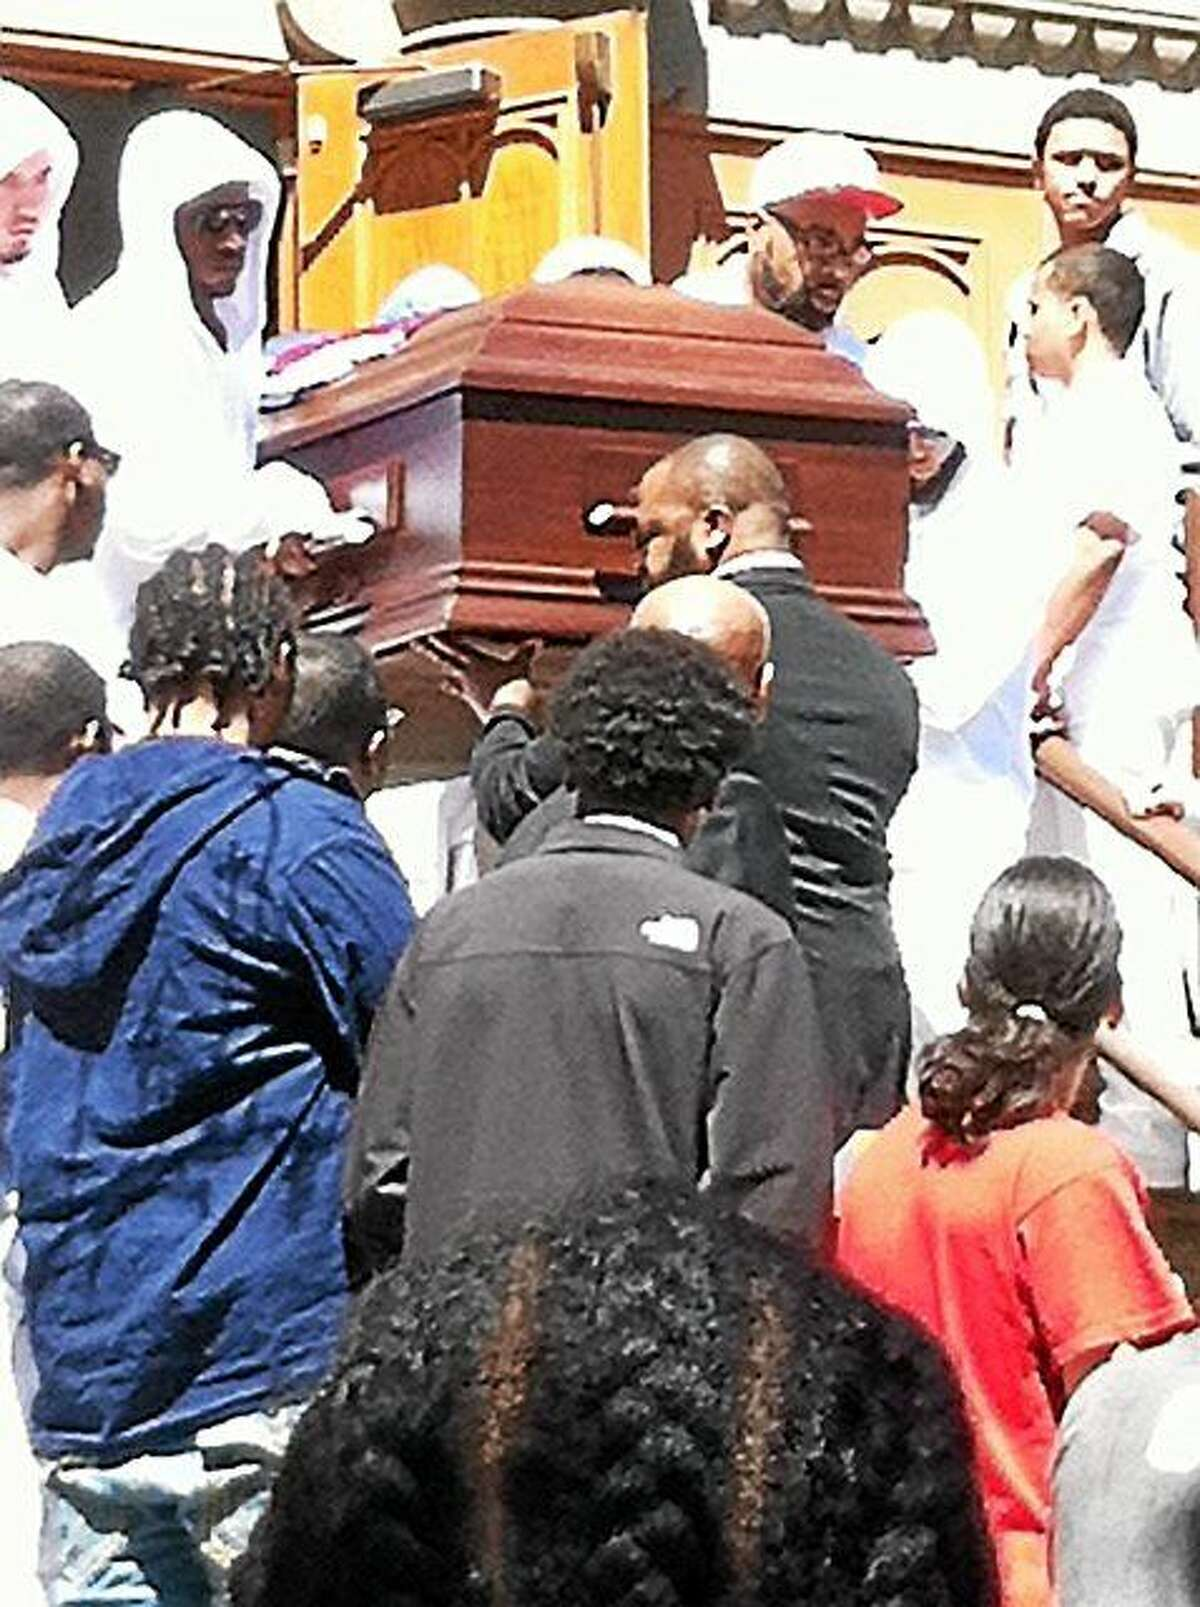 Funeral services were Saturday in New Haven for Jericho Scott, 16, who was killed in a drive-by shooting last weekend.